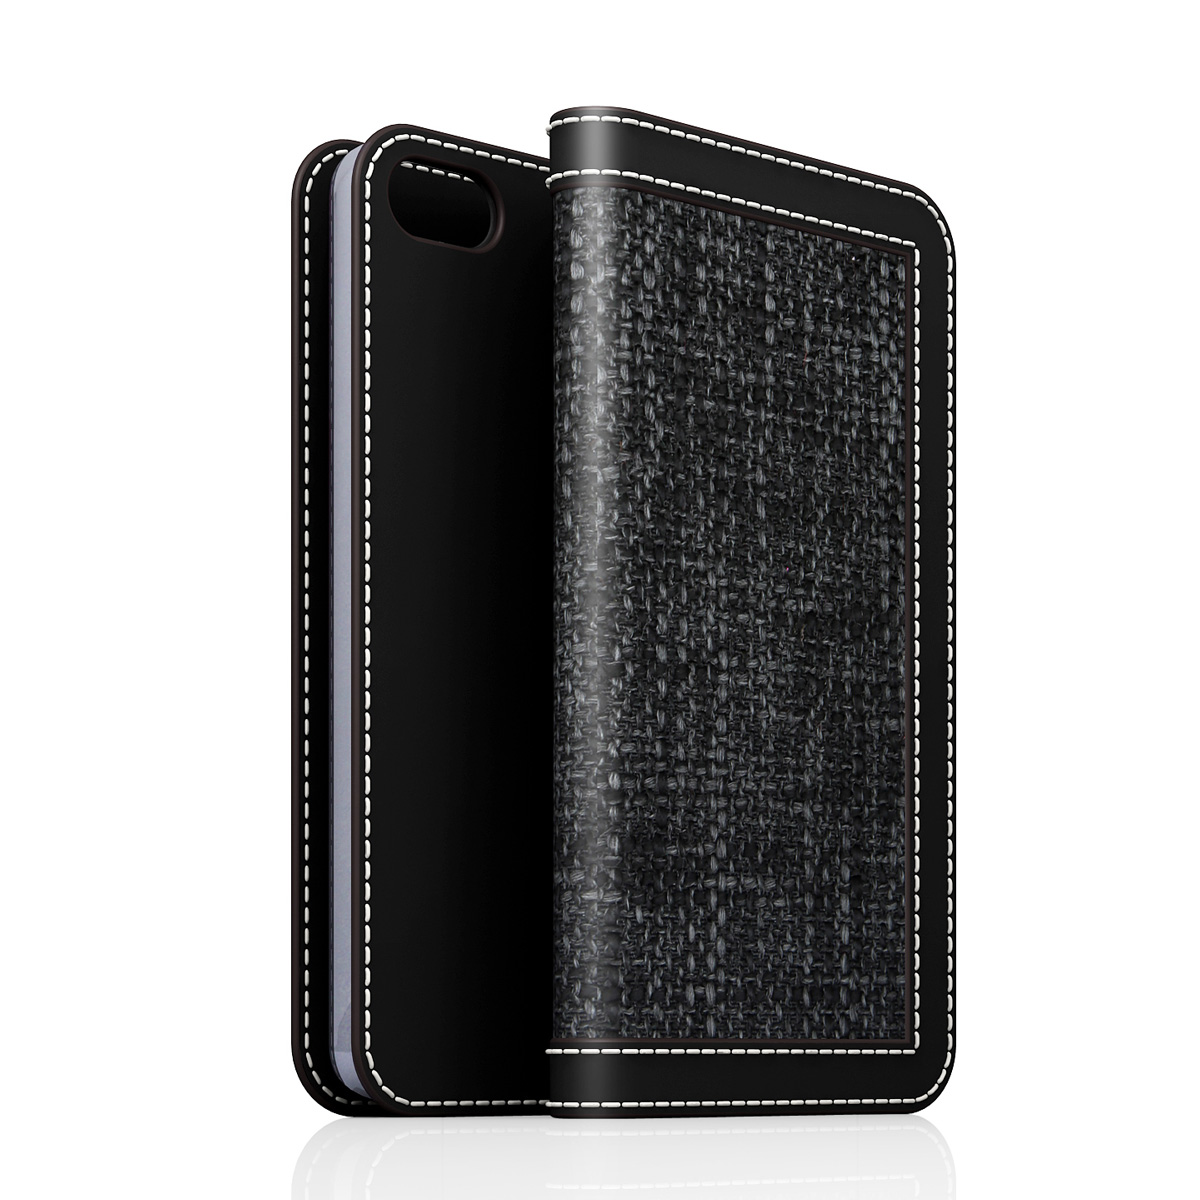 [iPhone5/5s] D5 Edition Calf Skin Leather Diary ブラック